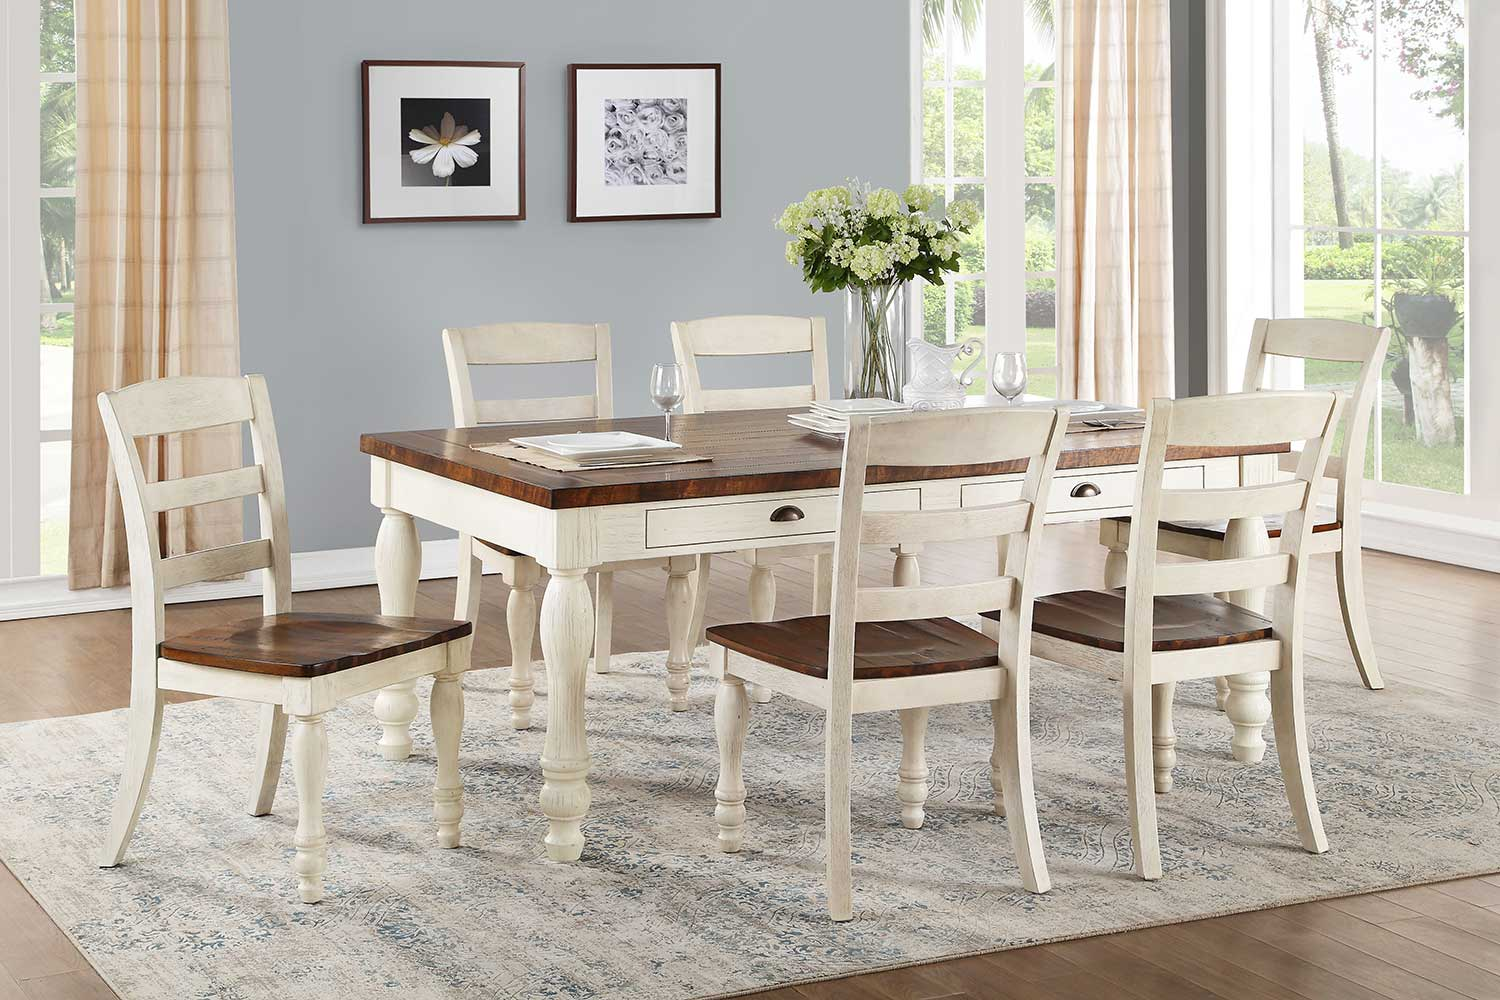 Acme Britta Dining Set - Walnut/White Washed